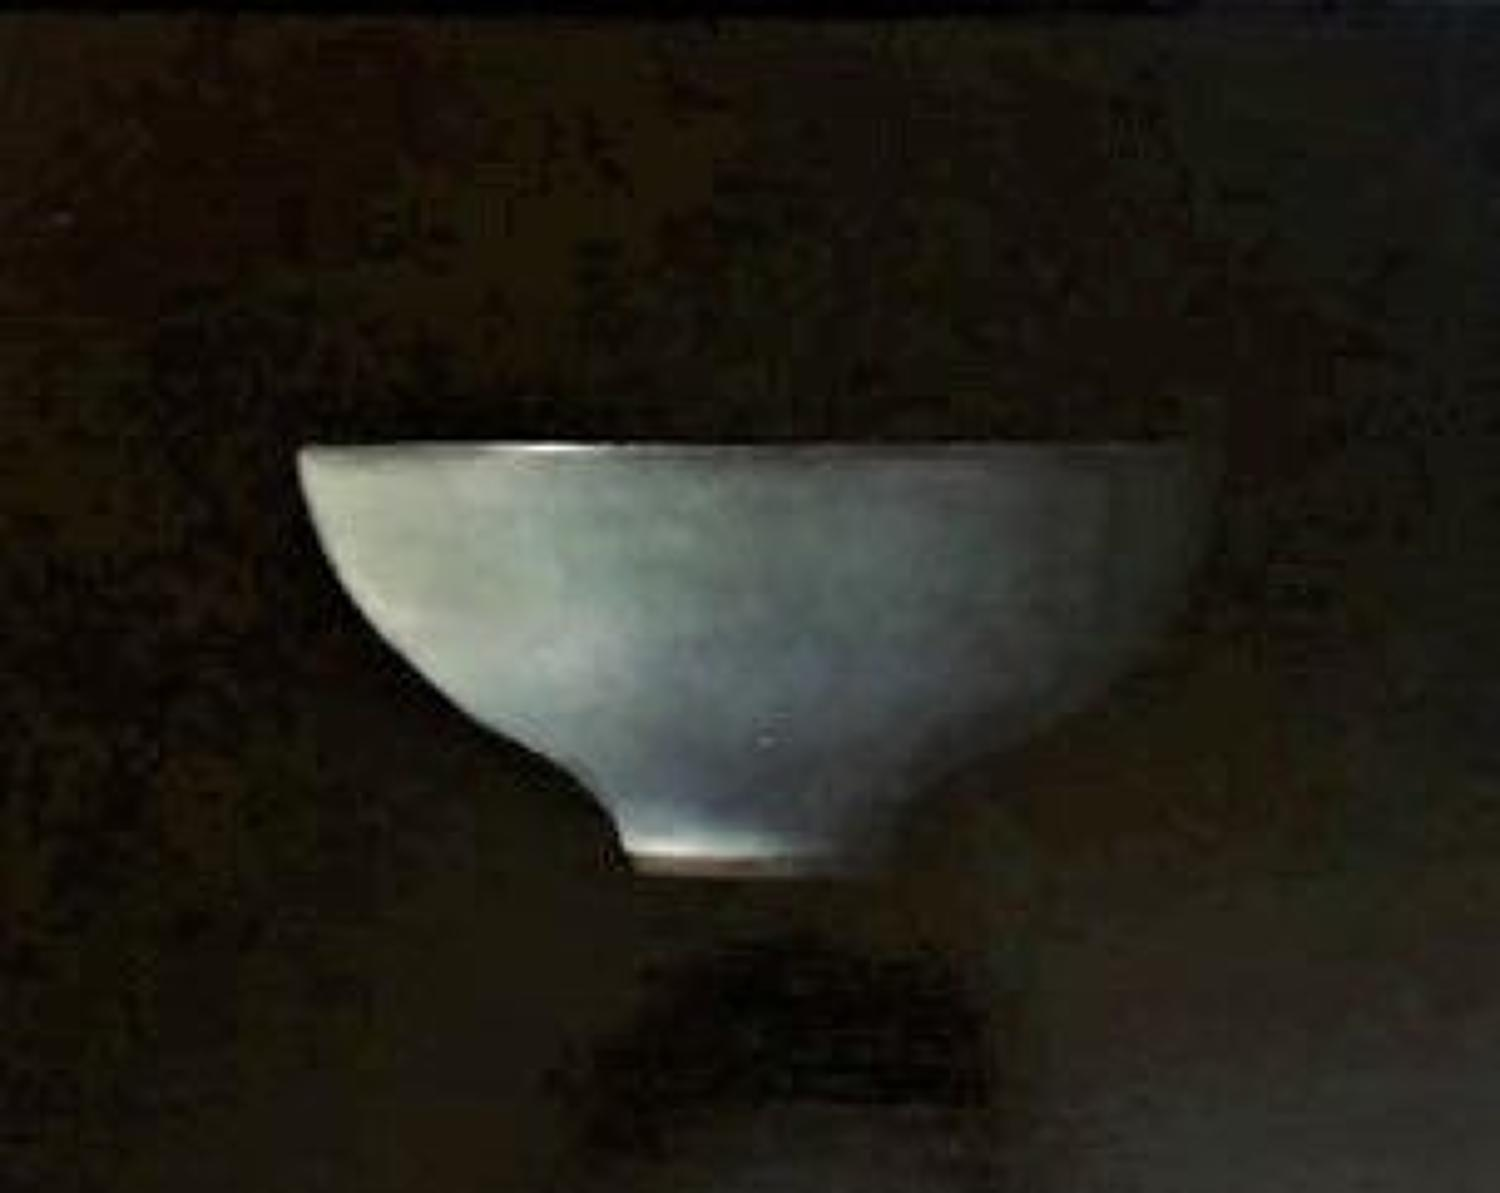 Judith Kuehne. Blue bowl in the distance.